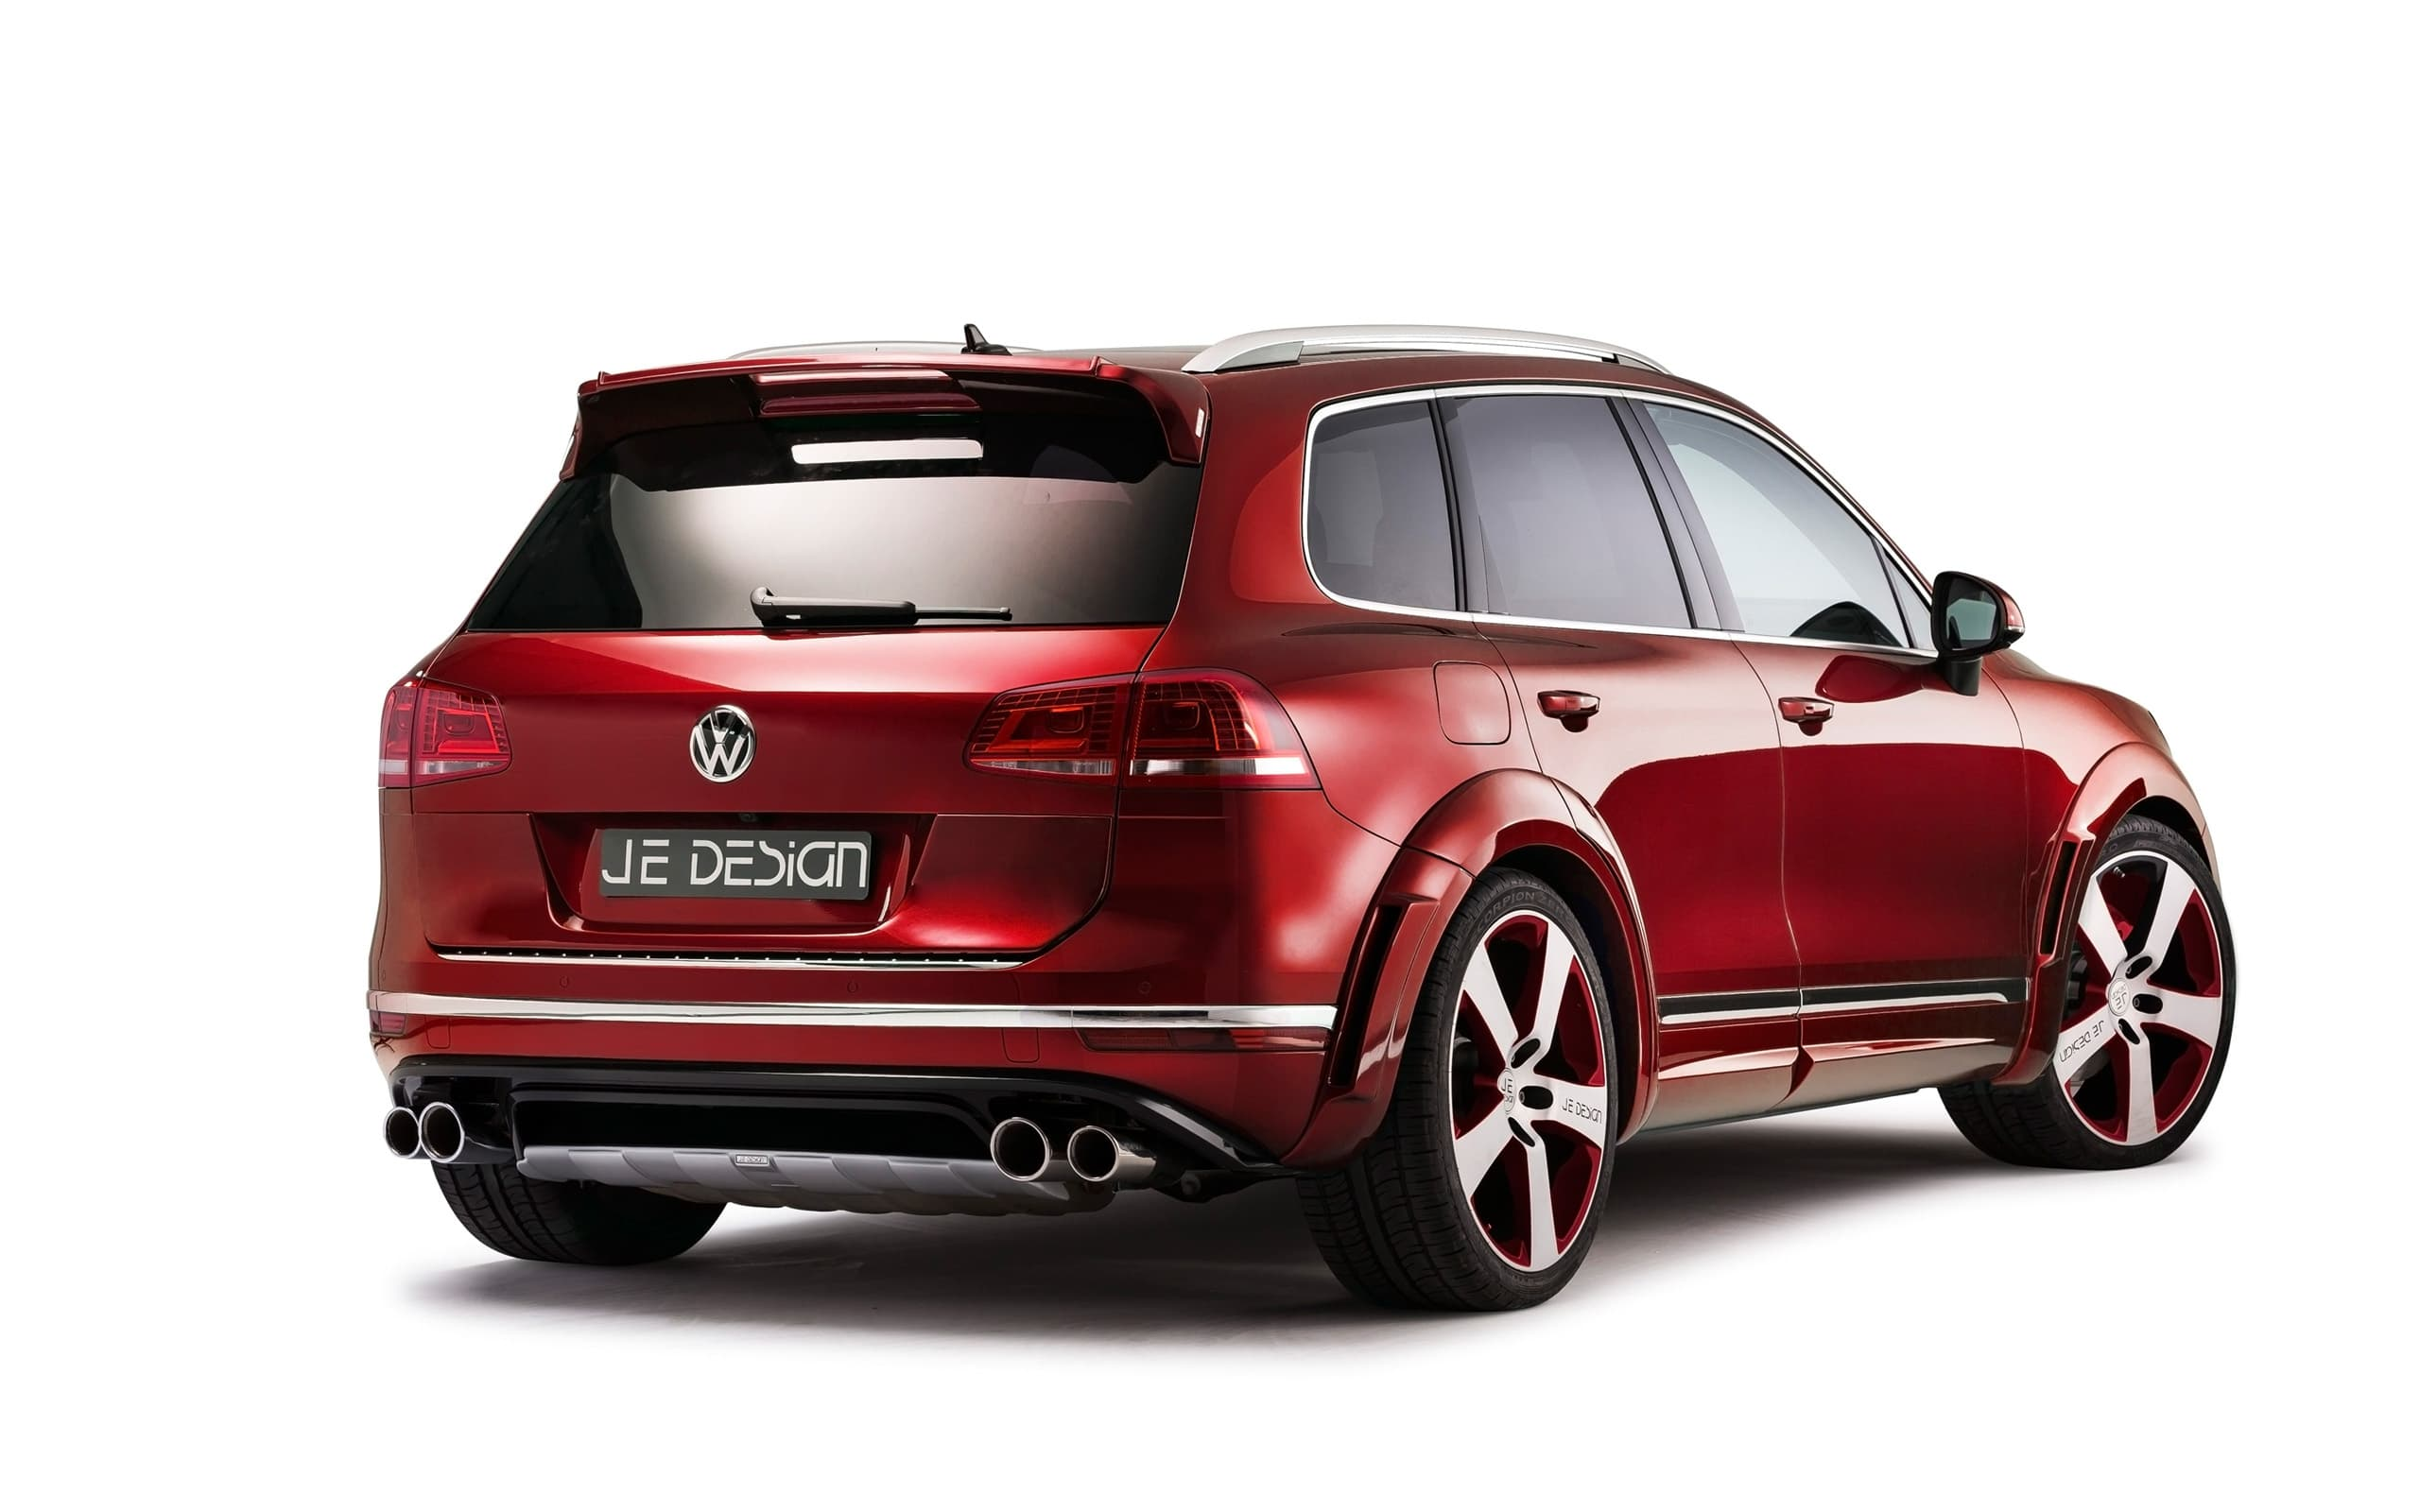 volkswagen touareg 2017 r line wallpapers hd je design red. Black Bedroom Furniture Sets. Home Design Ideas